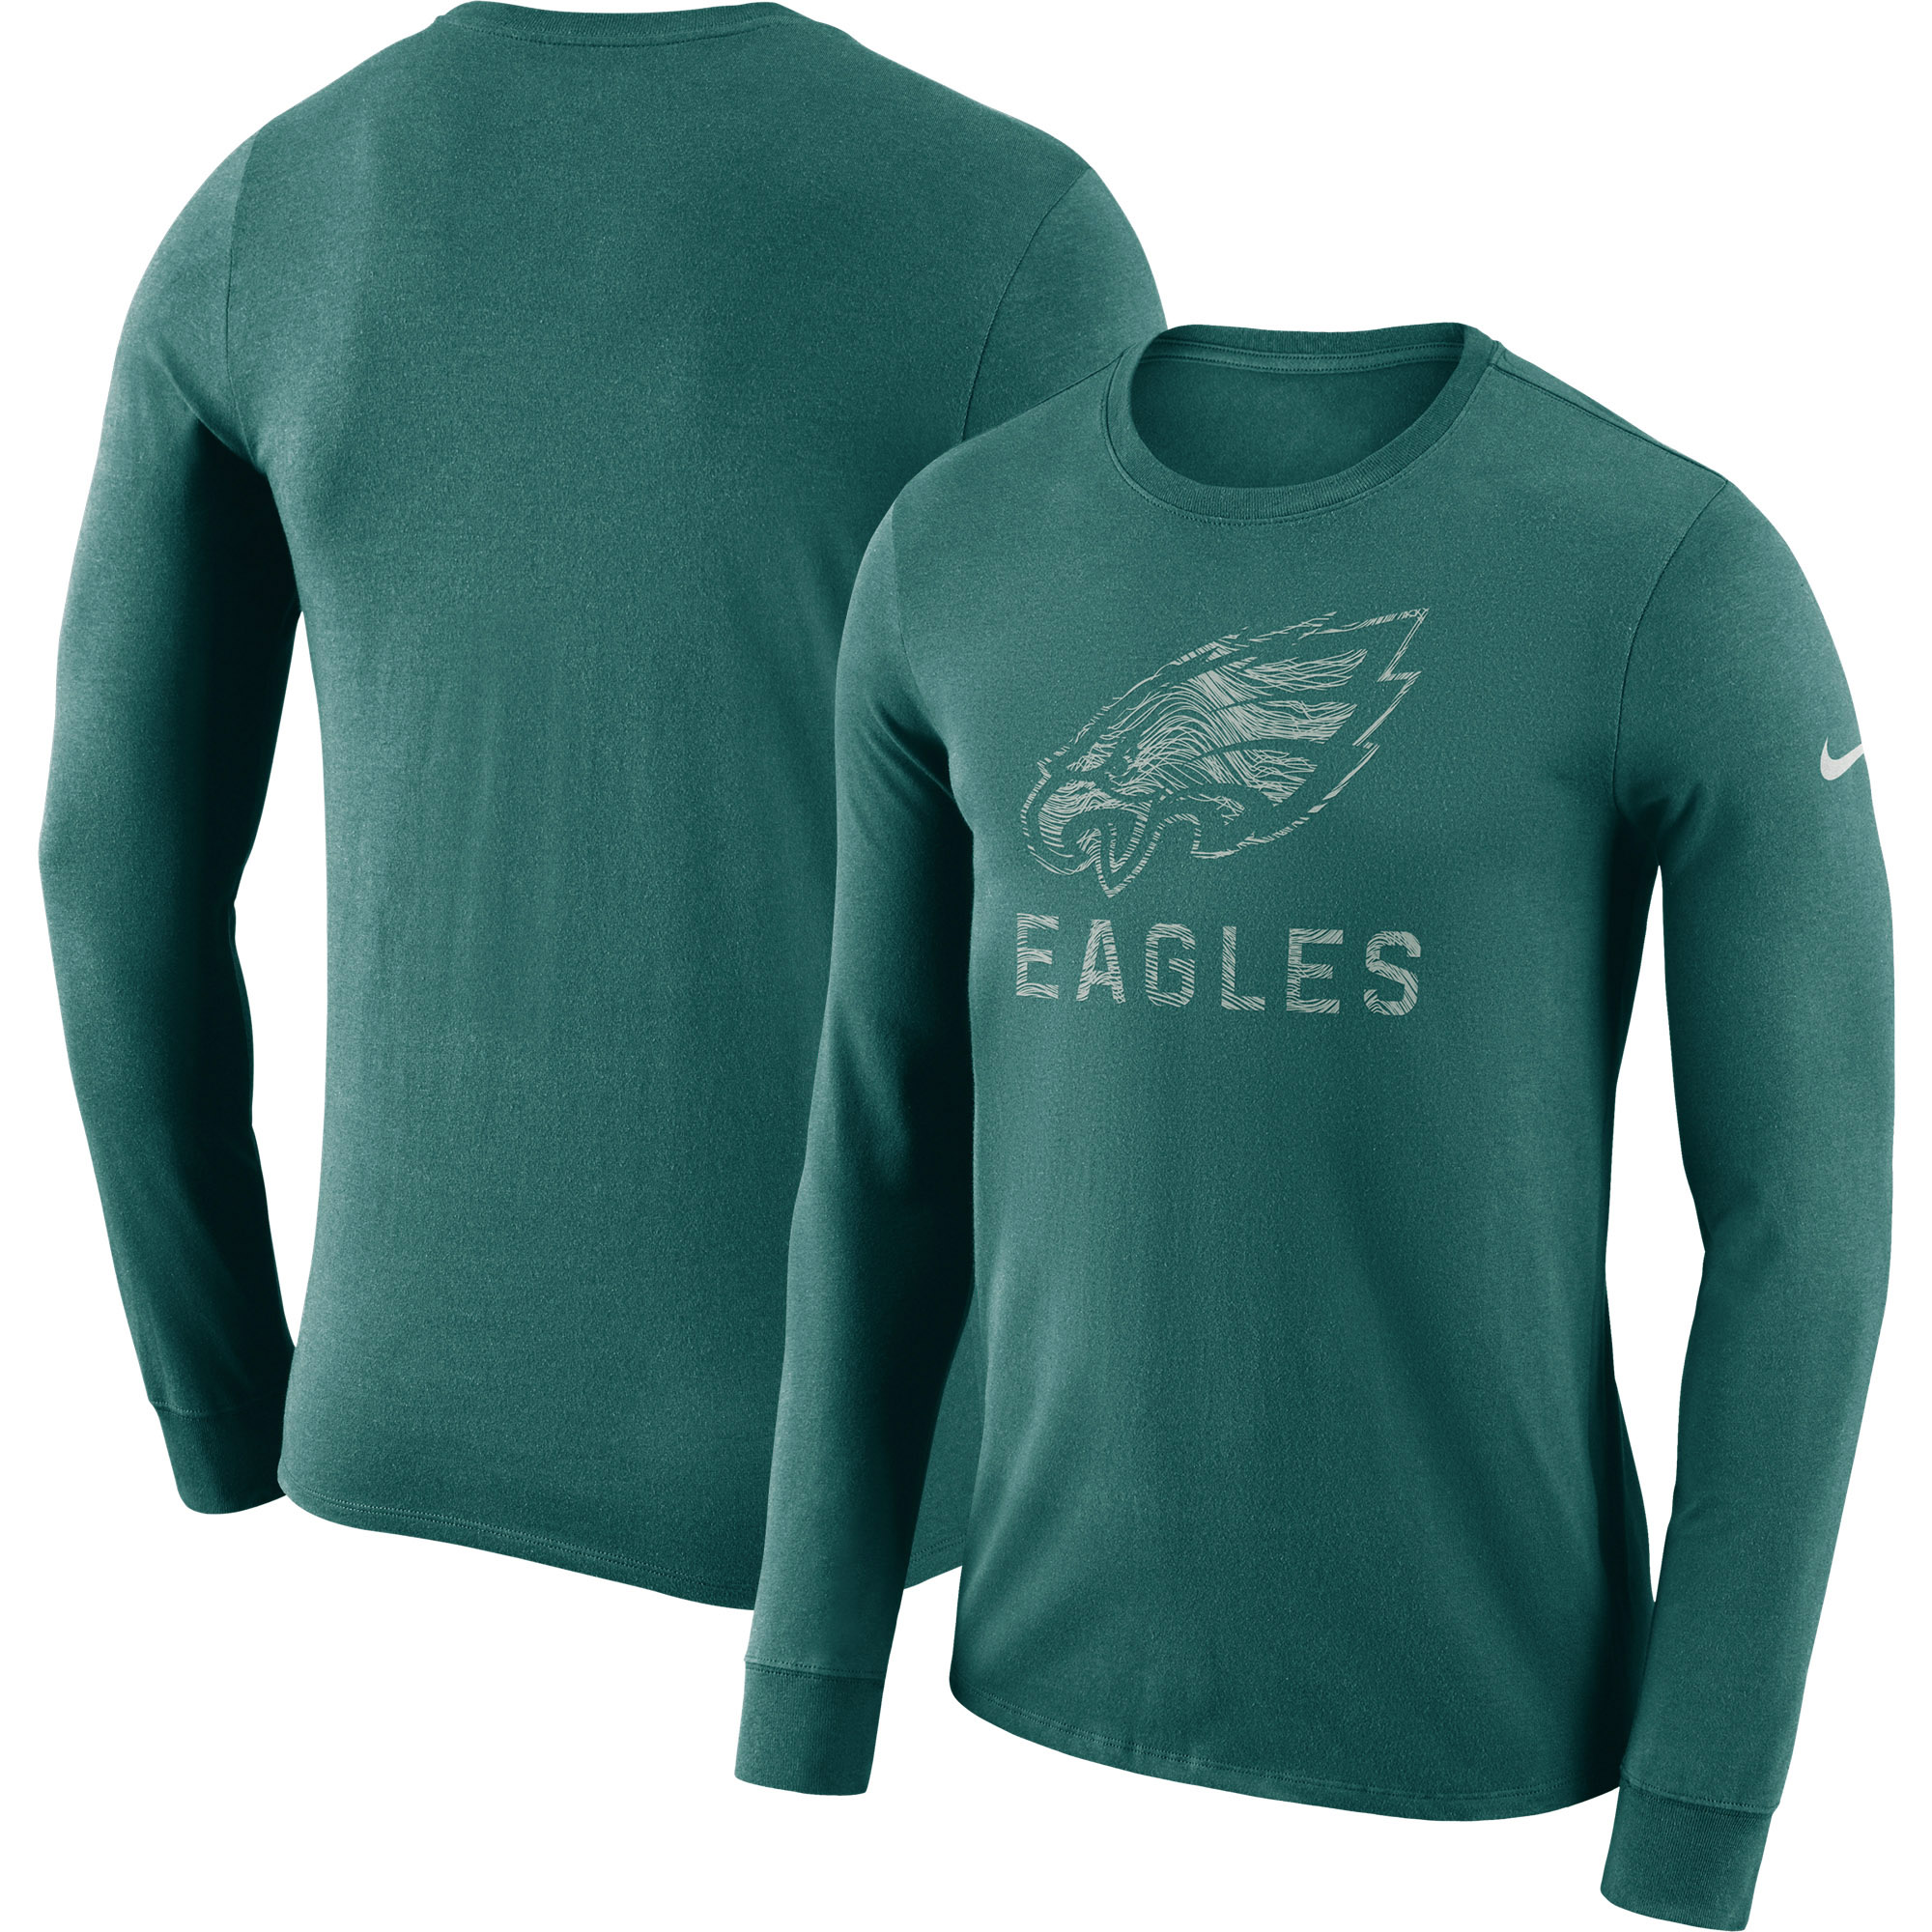 Philadelphia Eagles Nike Sideline Seismic Performance Long Sleeve T-Shirt - Midnight Green